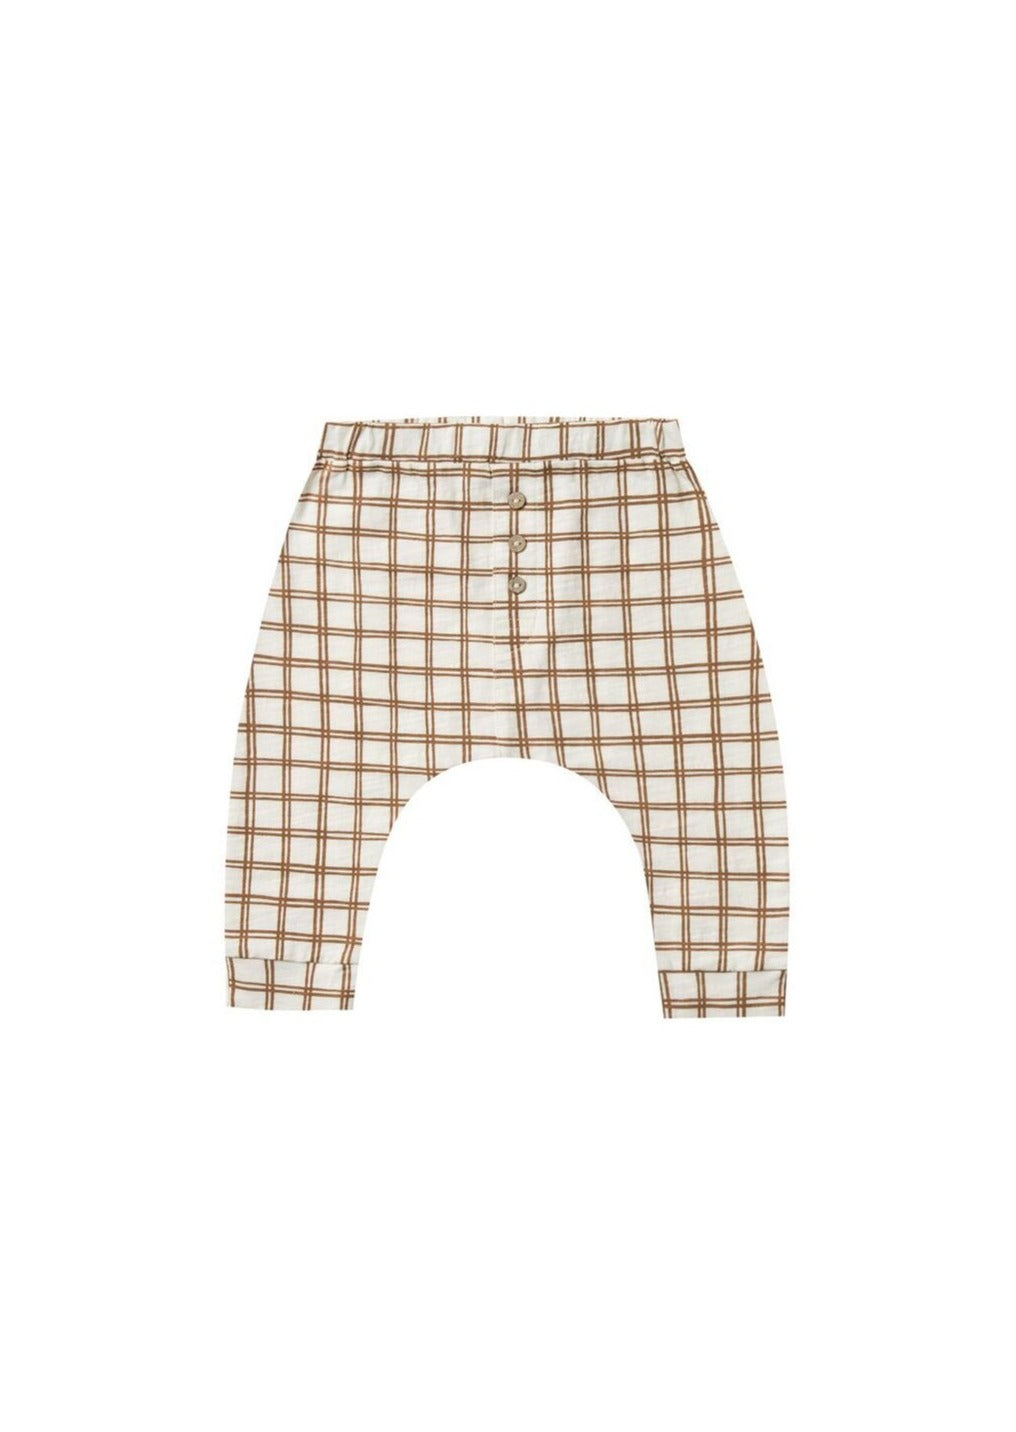 Rylee and Cru | Slub Pant | Bronze Grid